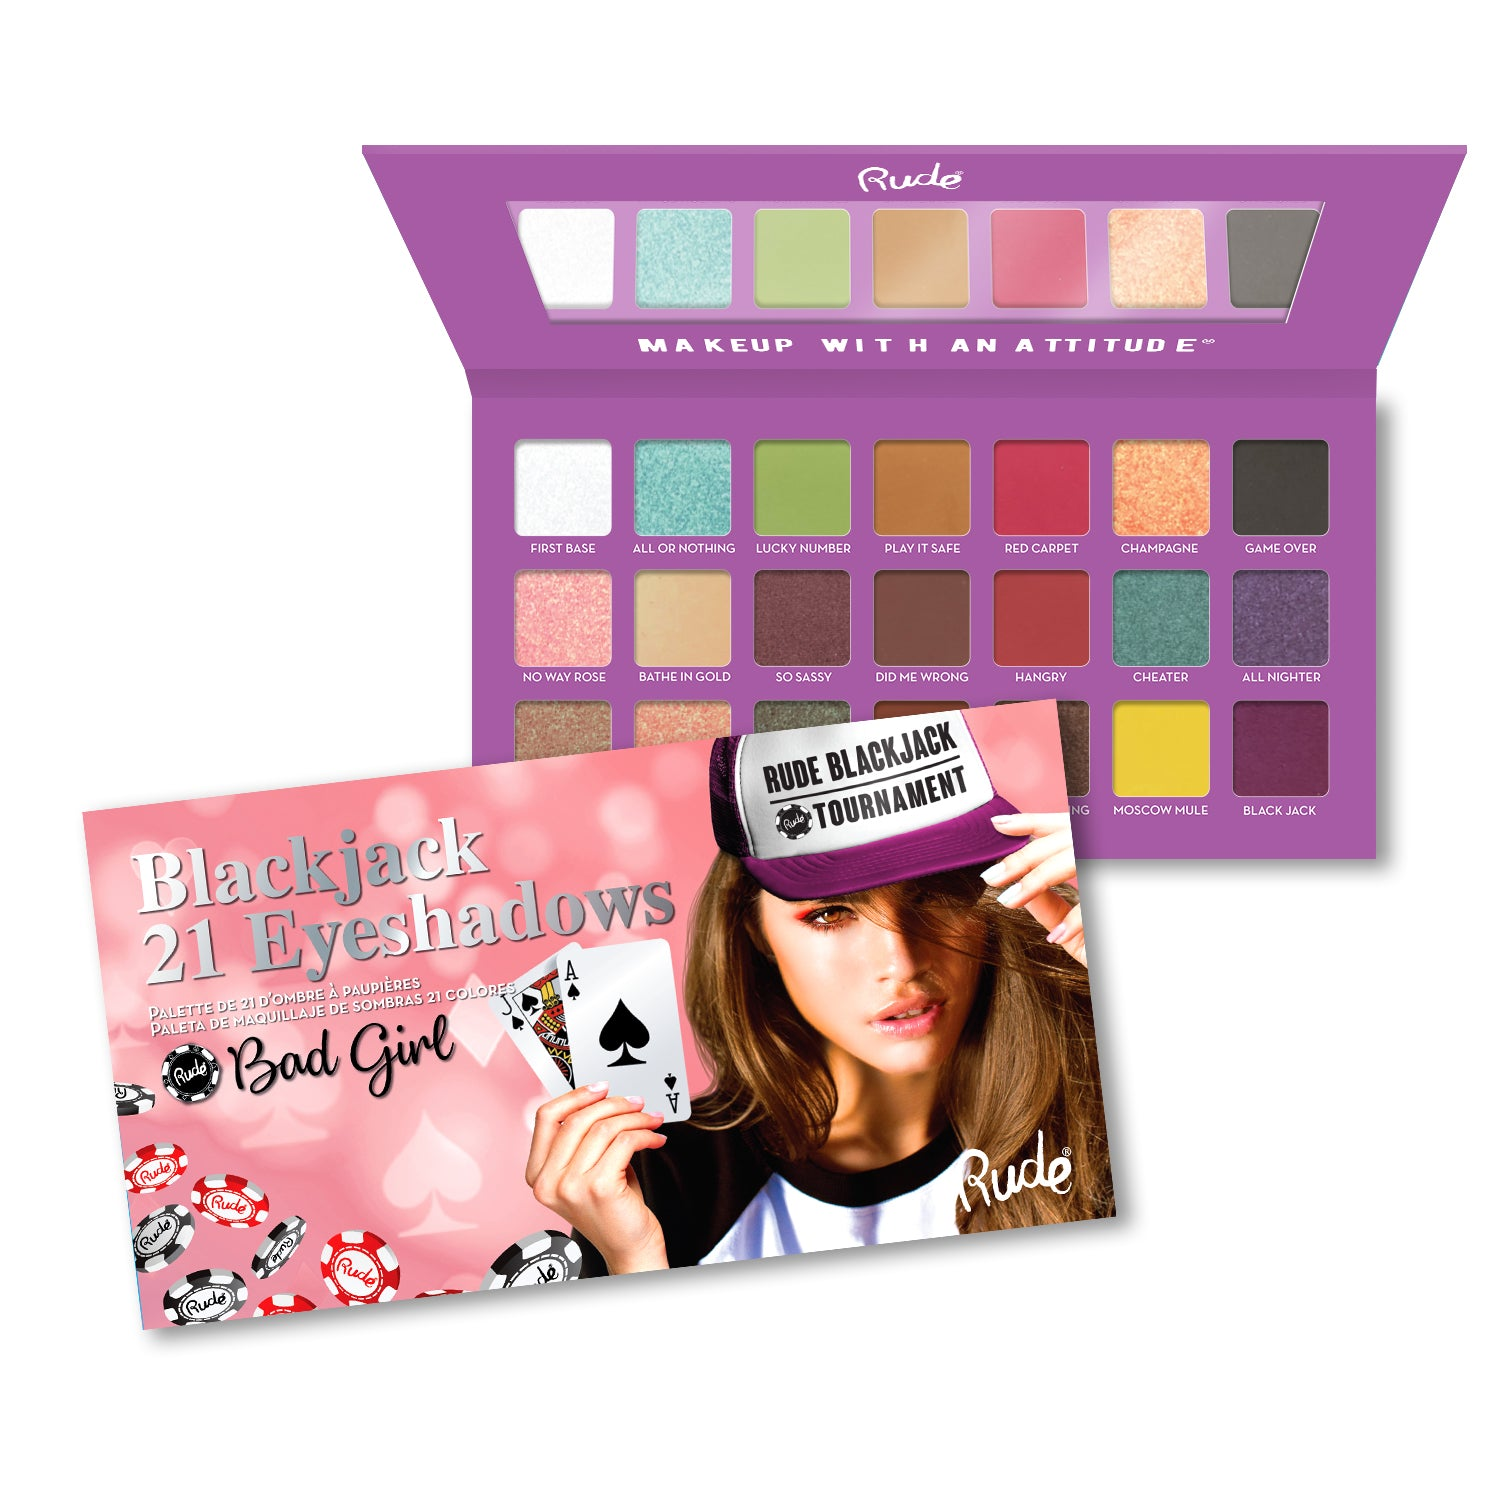 RUDE® Blackjack 21 Eyeshadows | HODIVA SHOP